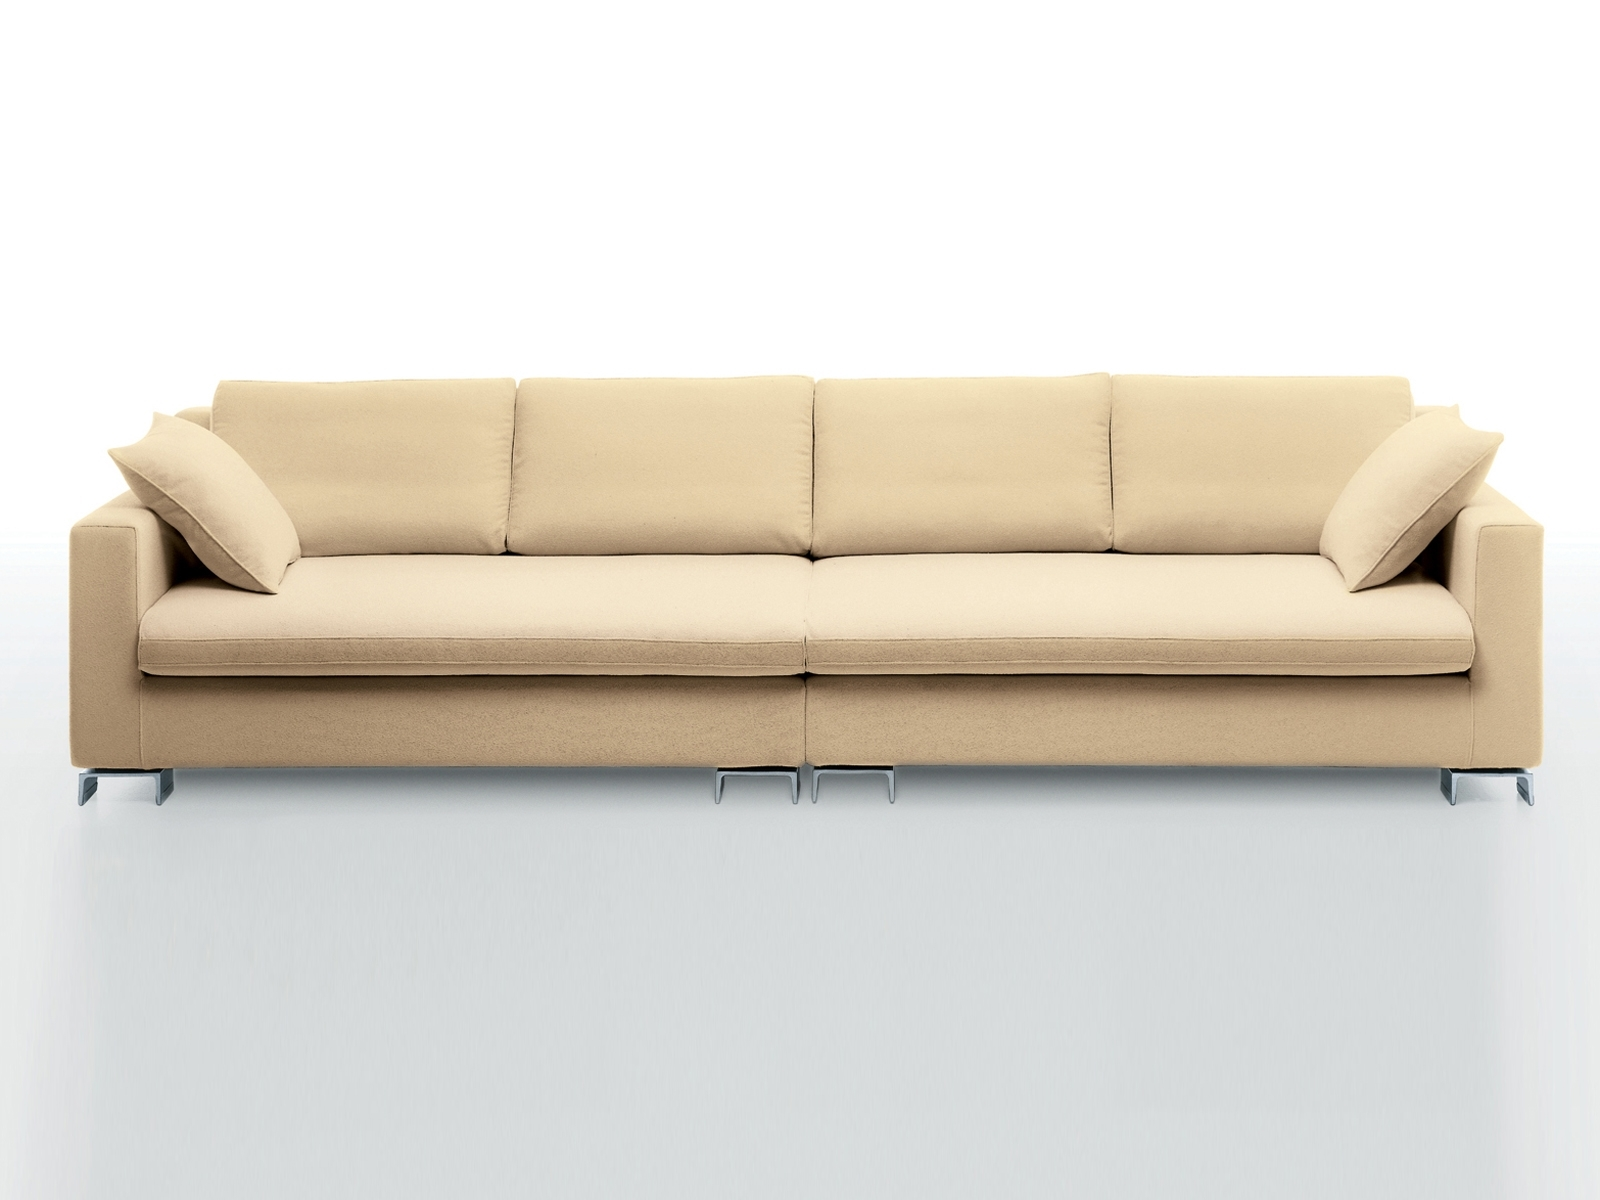 Most Recent 4 Seater Sofa For Large And Trendy Living Room For Large 4 Seater Sofas (View 7 of 20)